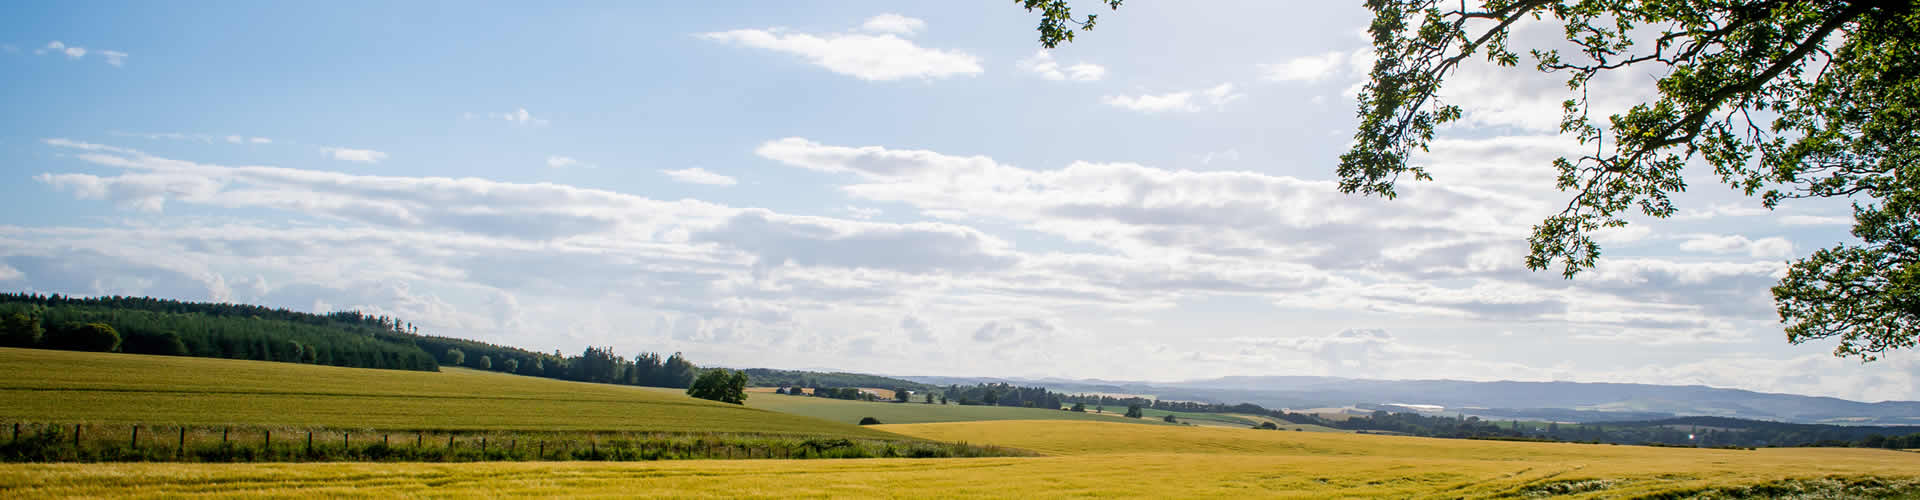 New homes for sale in Perthshire